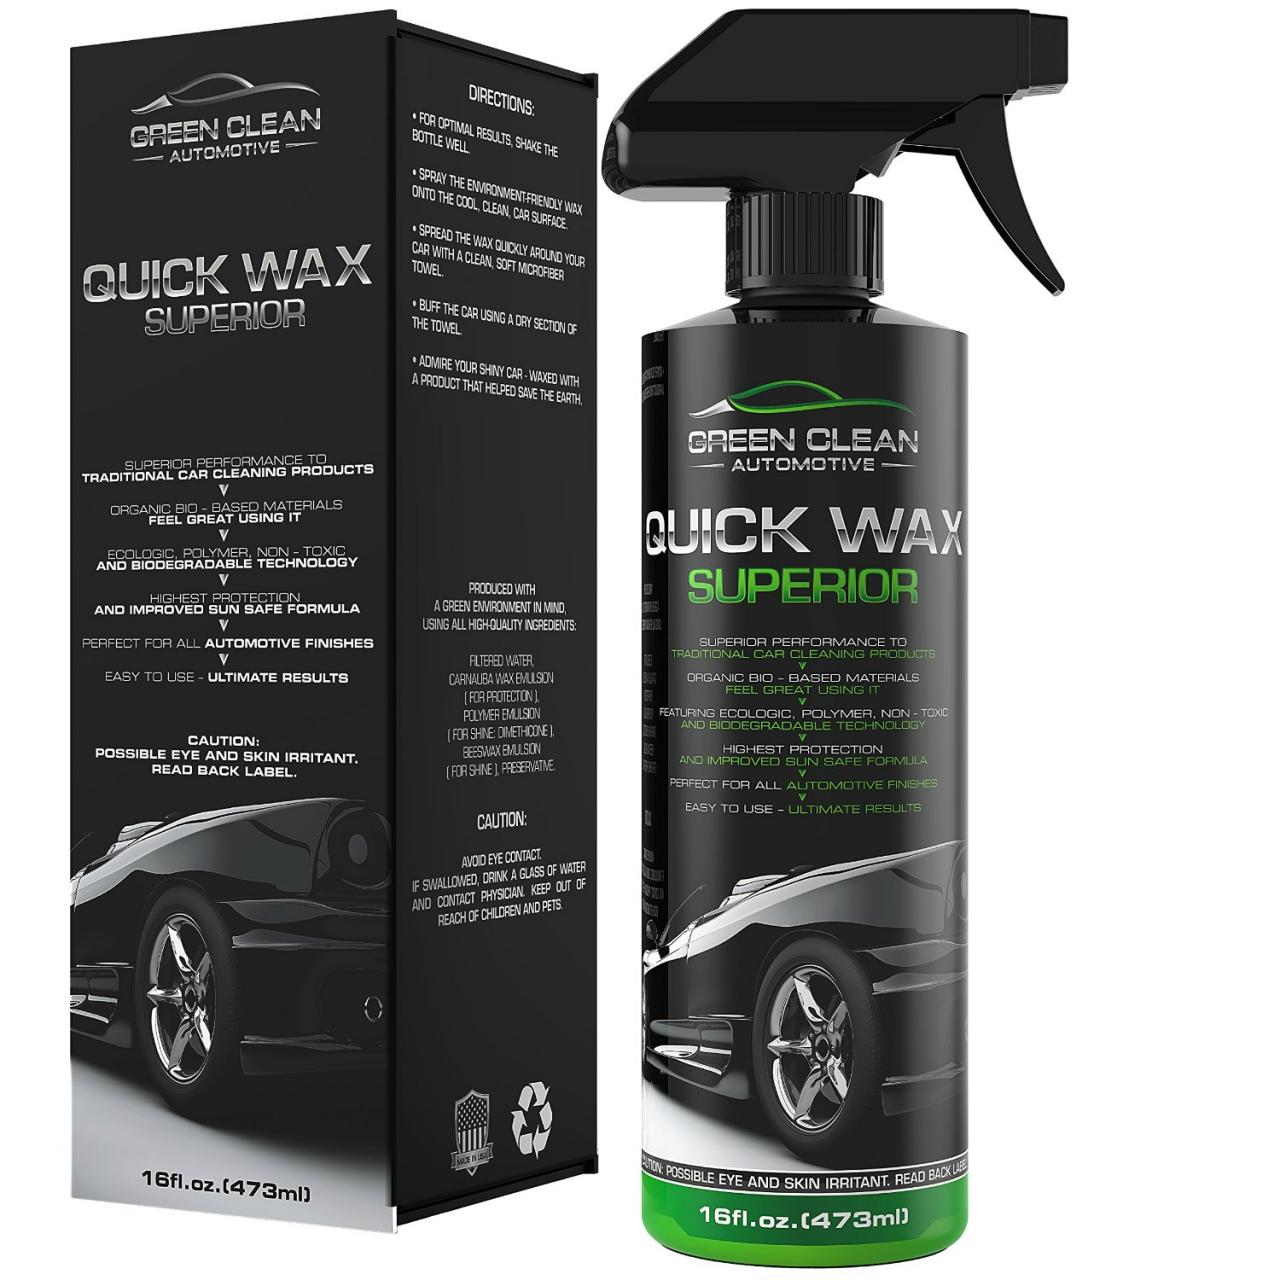 2016's Top 10 Best Car Waxes On The Market